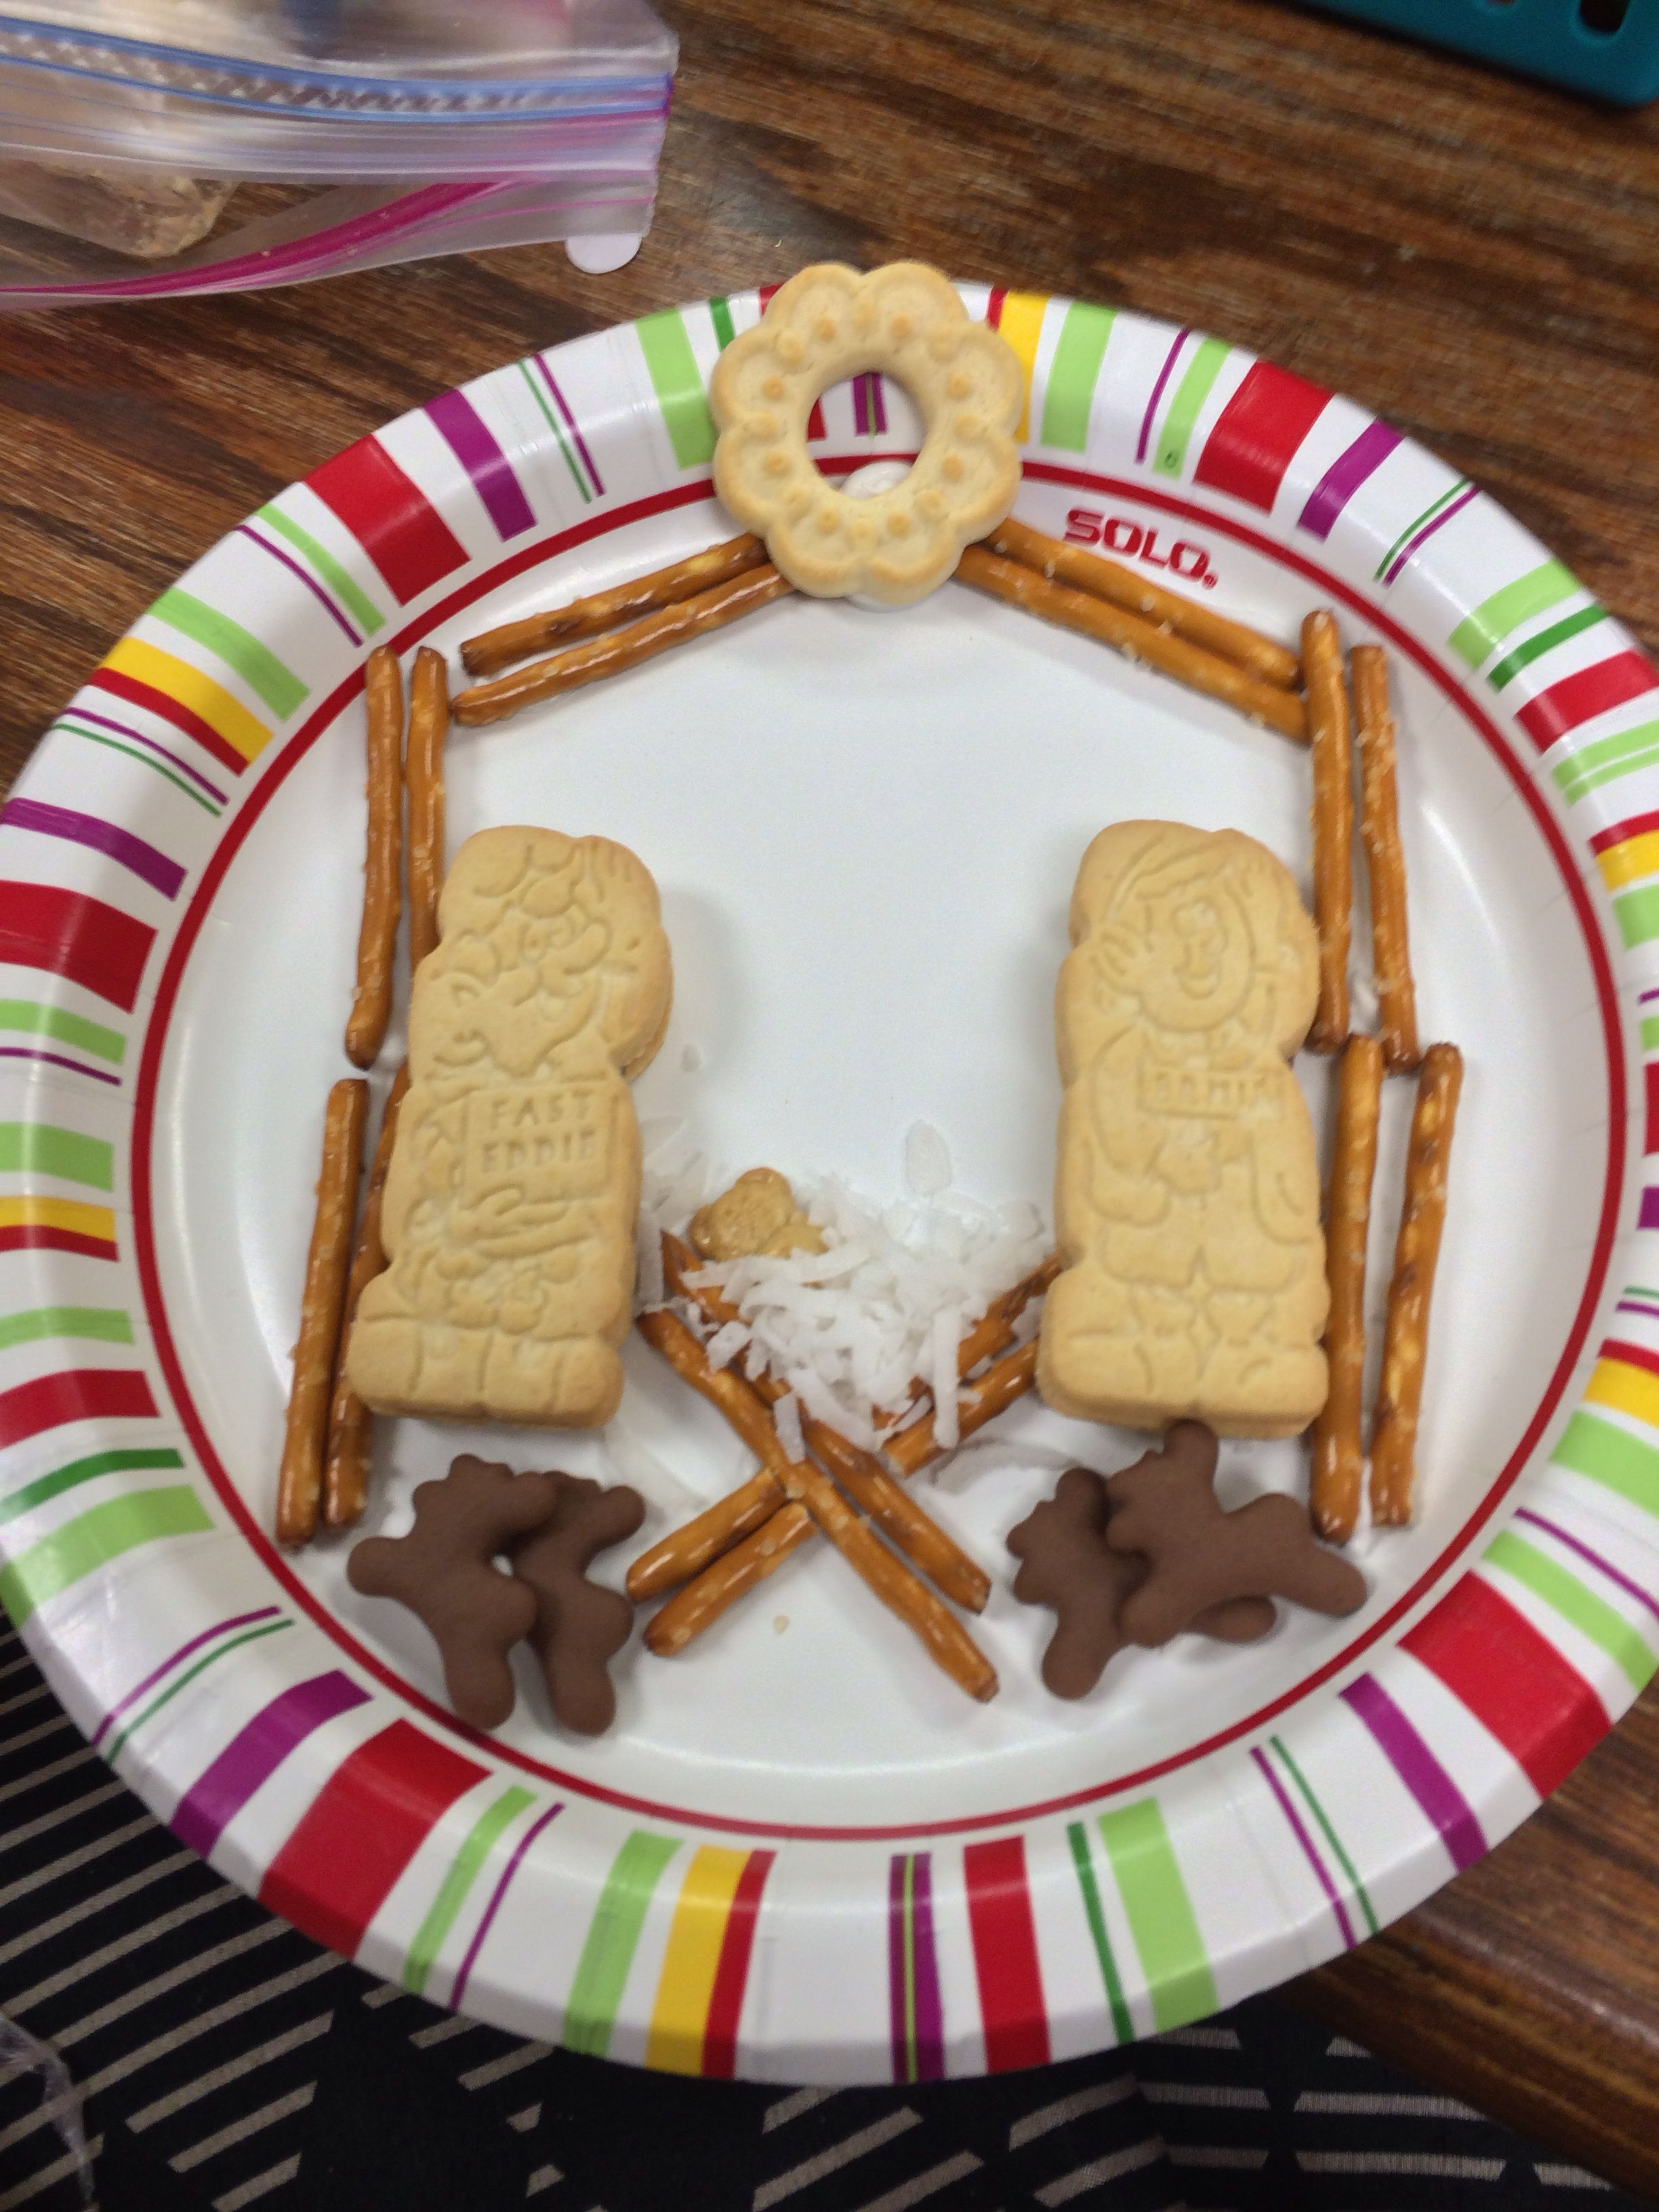 My Sunday School Snack From Christmas The Kids Loved It